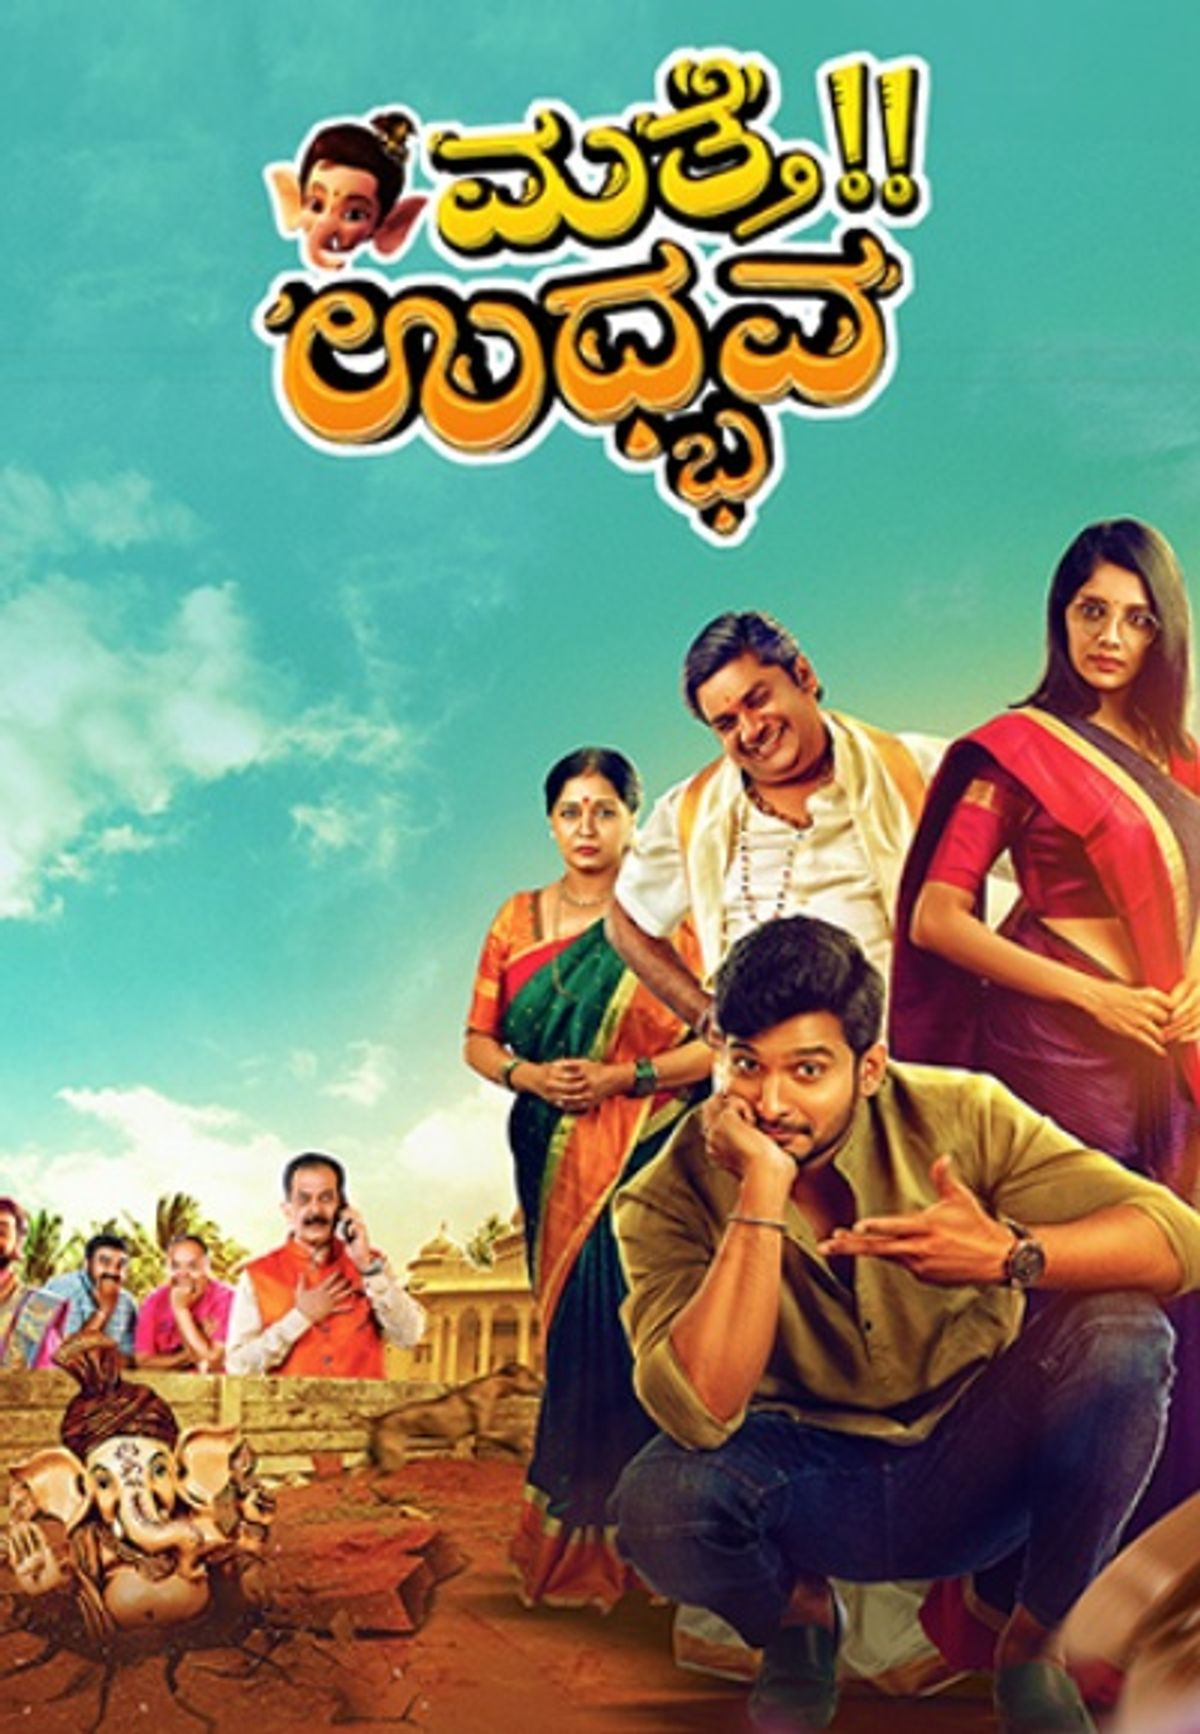 Pramod Best Movies, TV Shows and Web Series List